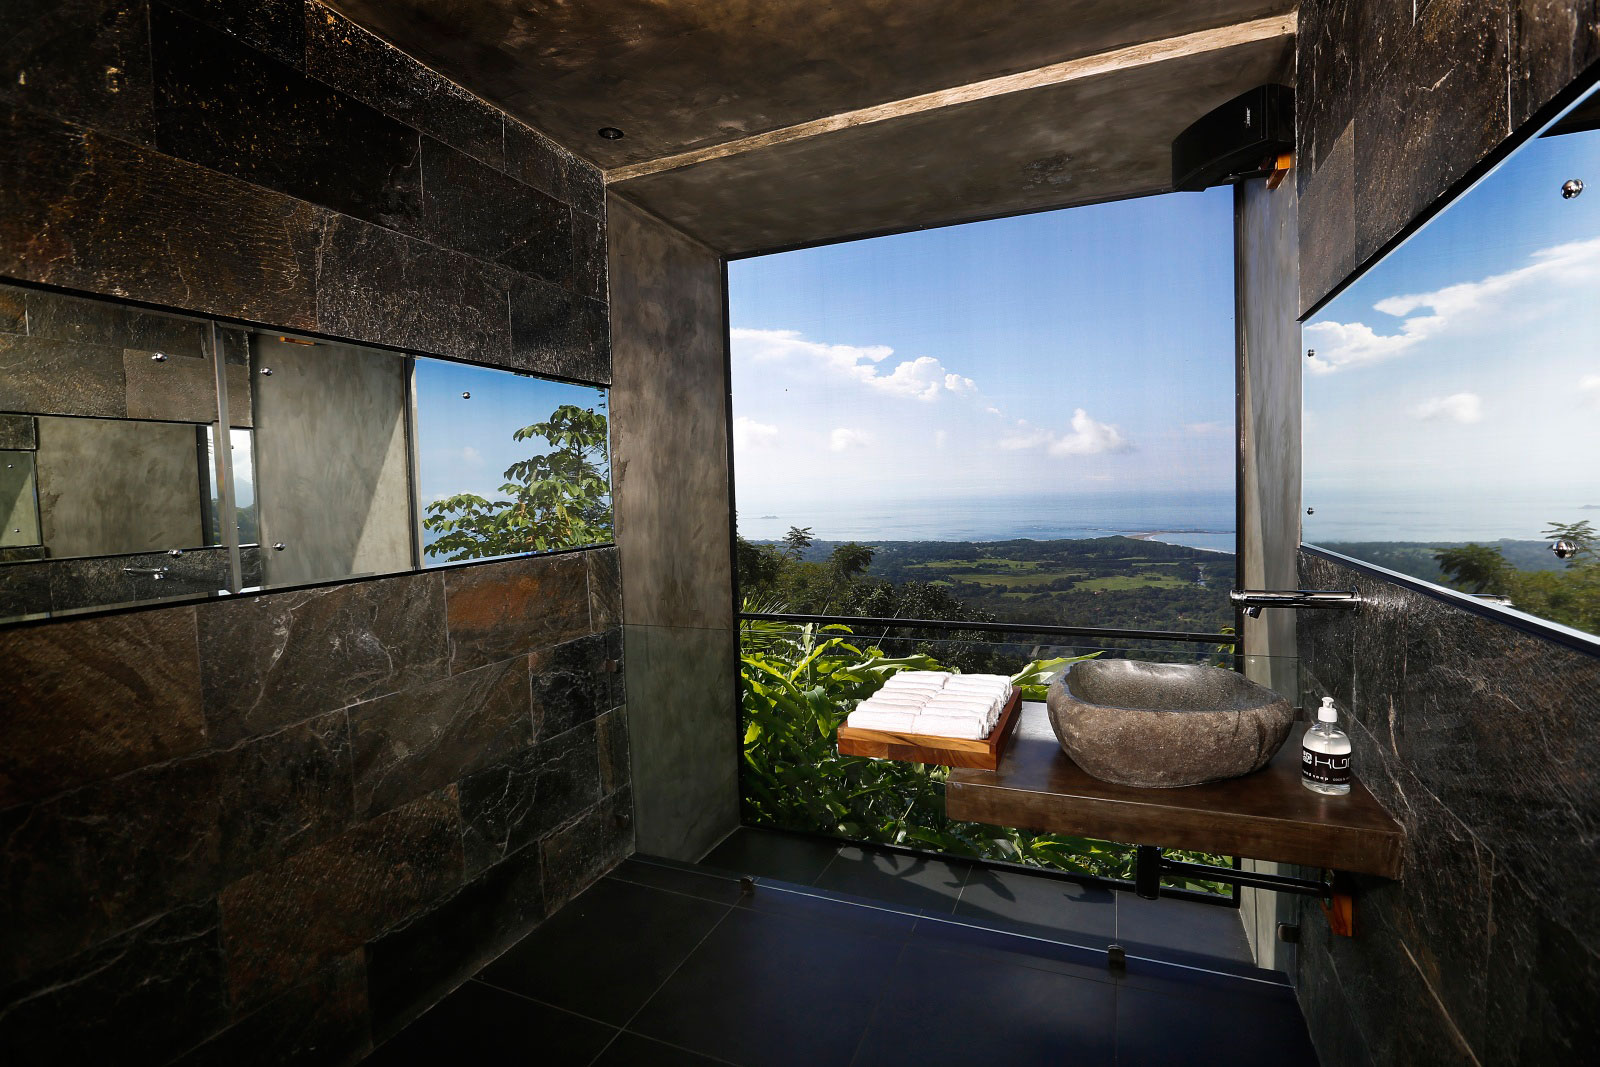 Natural Stone Sink, Bathroom, Sea Views, Holiday Villas in Costa Rica